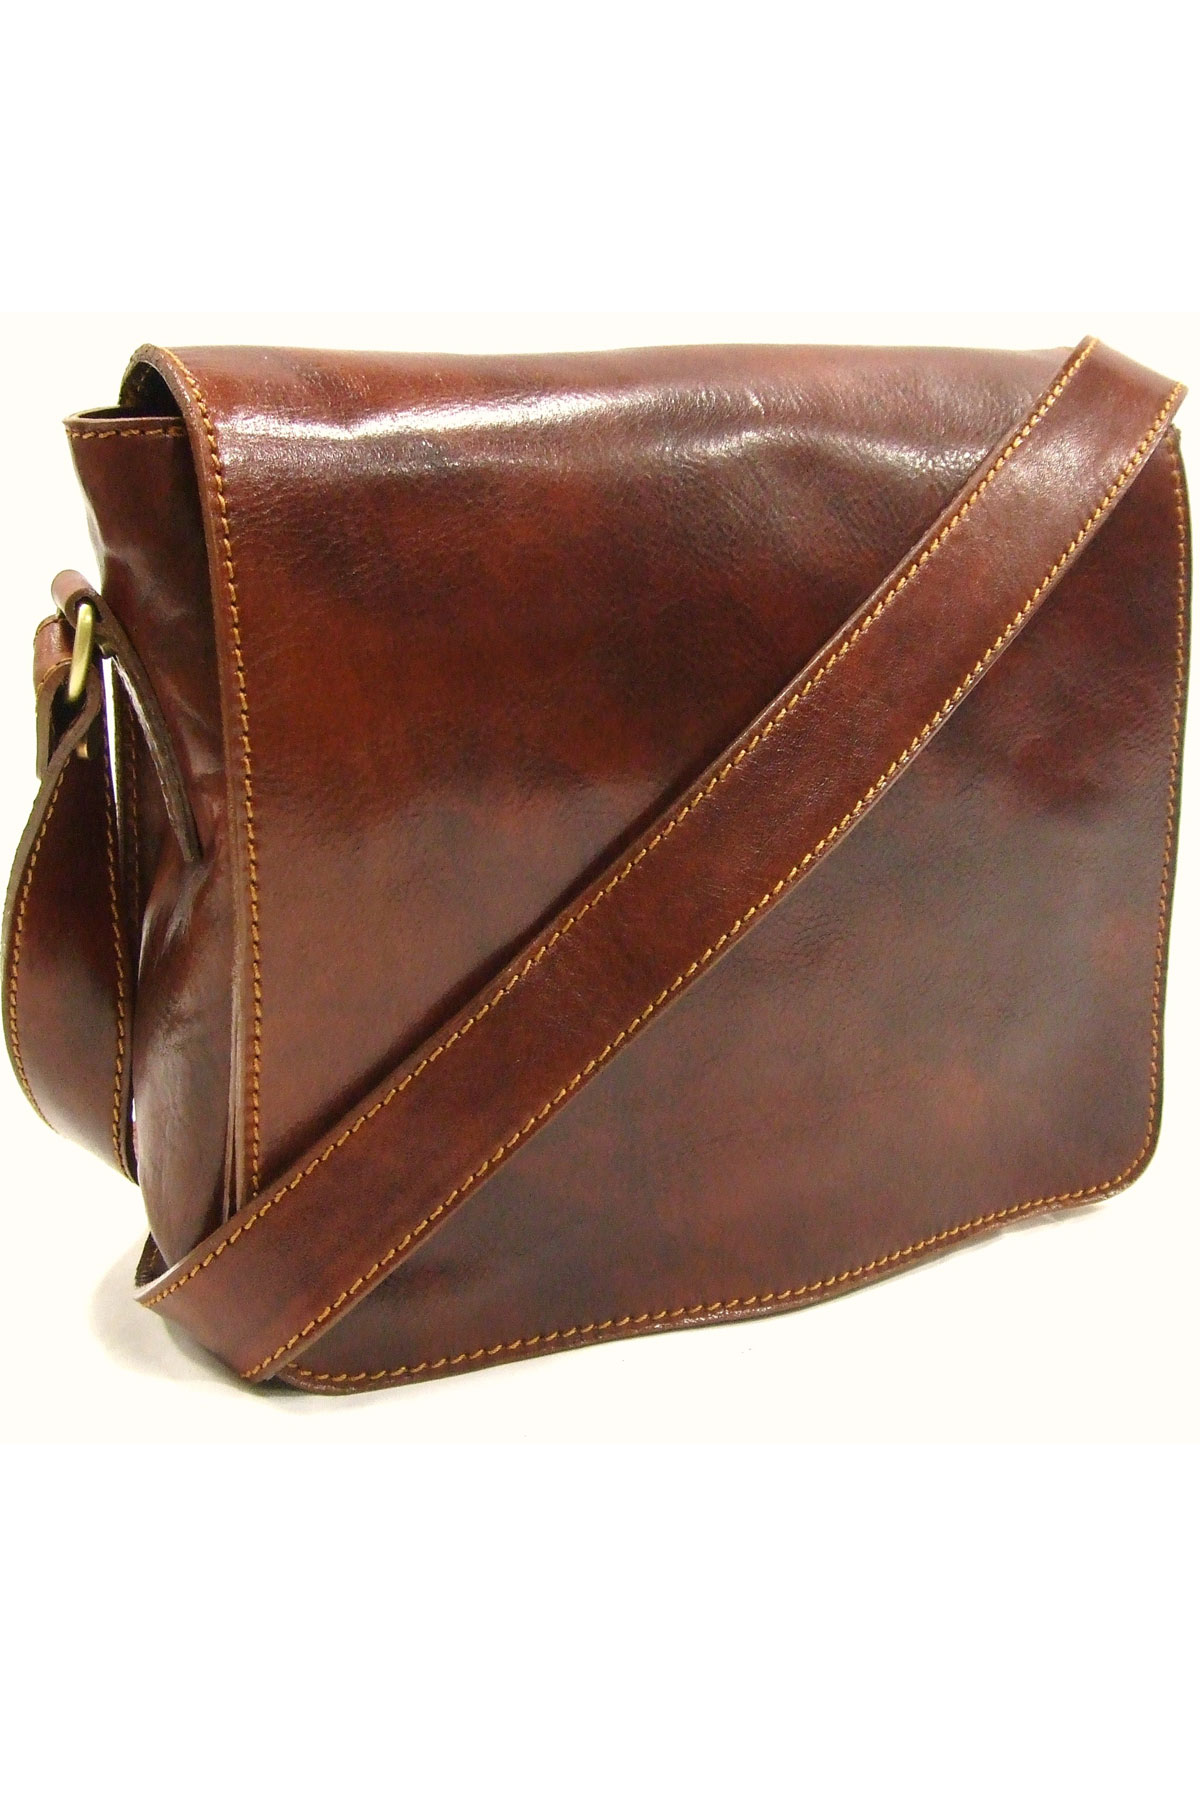 Italian Leather Messenger Bag by Woodland Leather